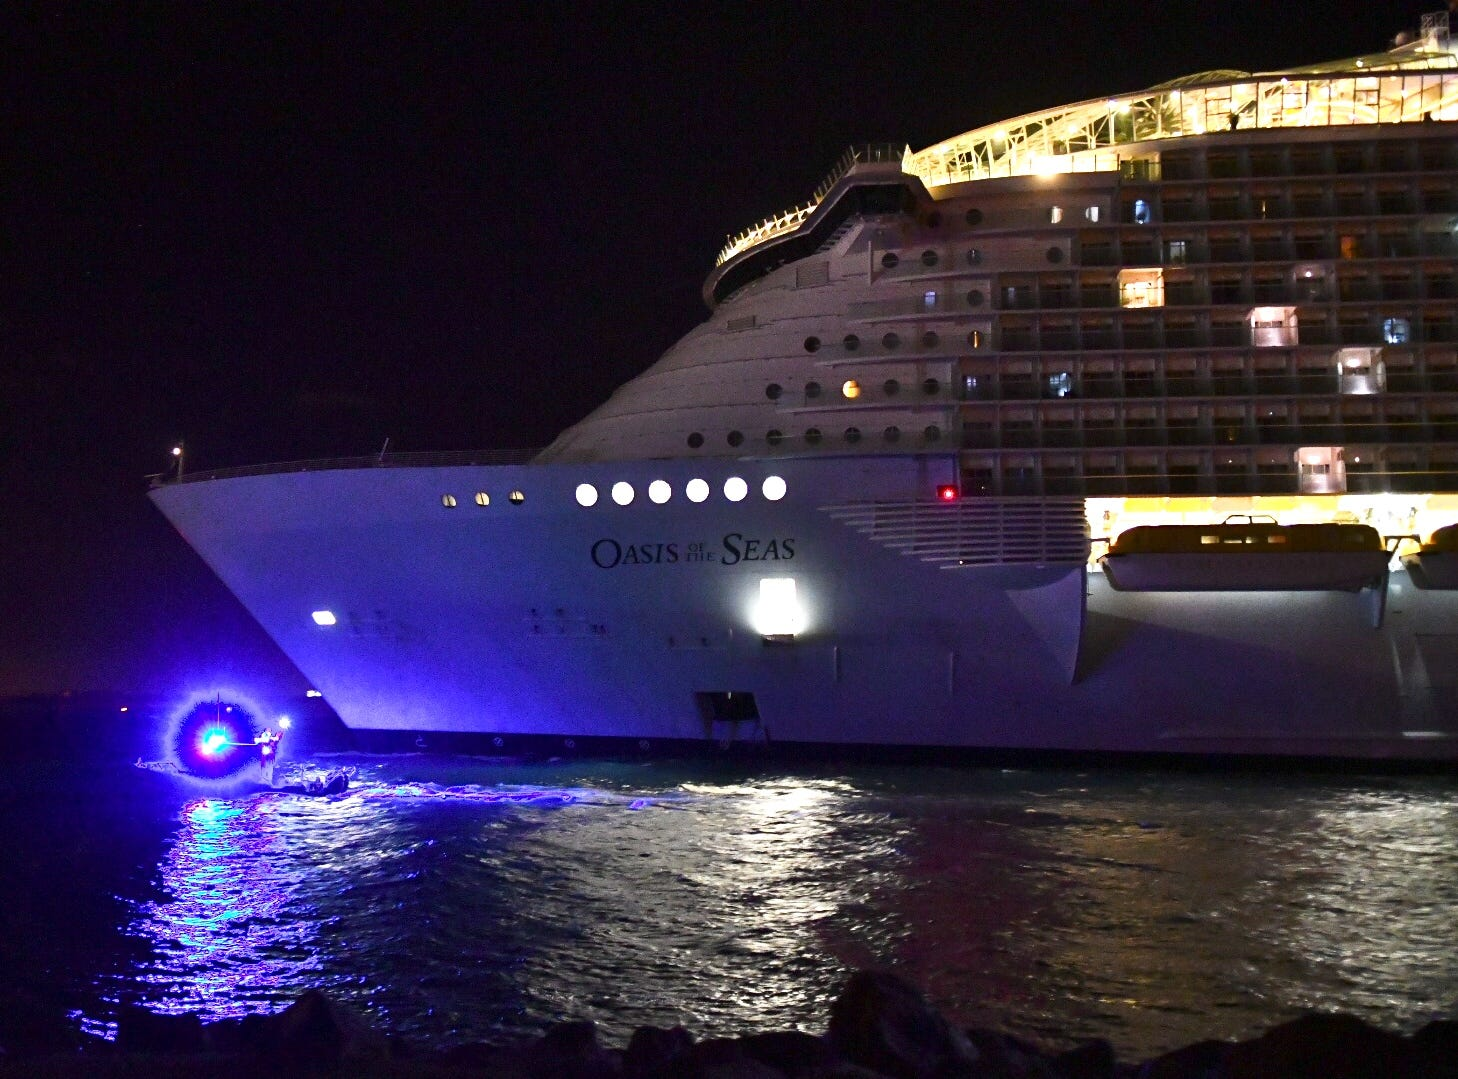 Following a Norovirus outbreak that sickened 402 people, Royal Caribbean's Oasis of the Seas returned to Port Canaveral a day earlier than expected. The ship pulled into port early morning of Jan. 12, 2019.